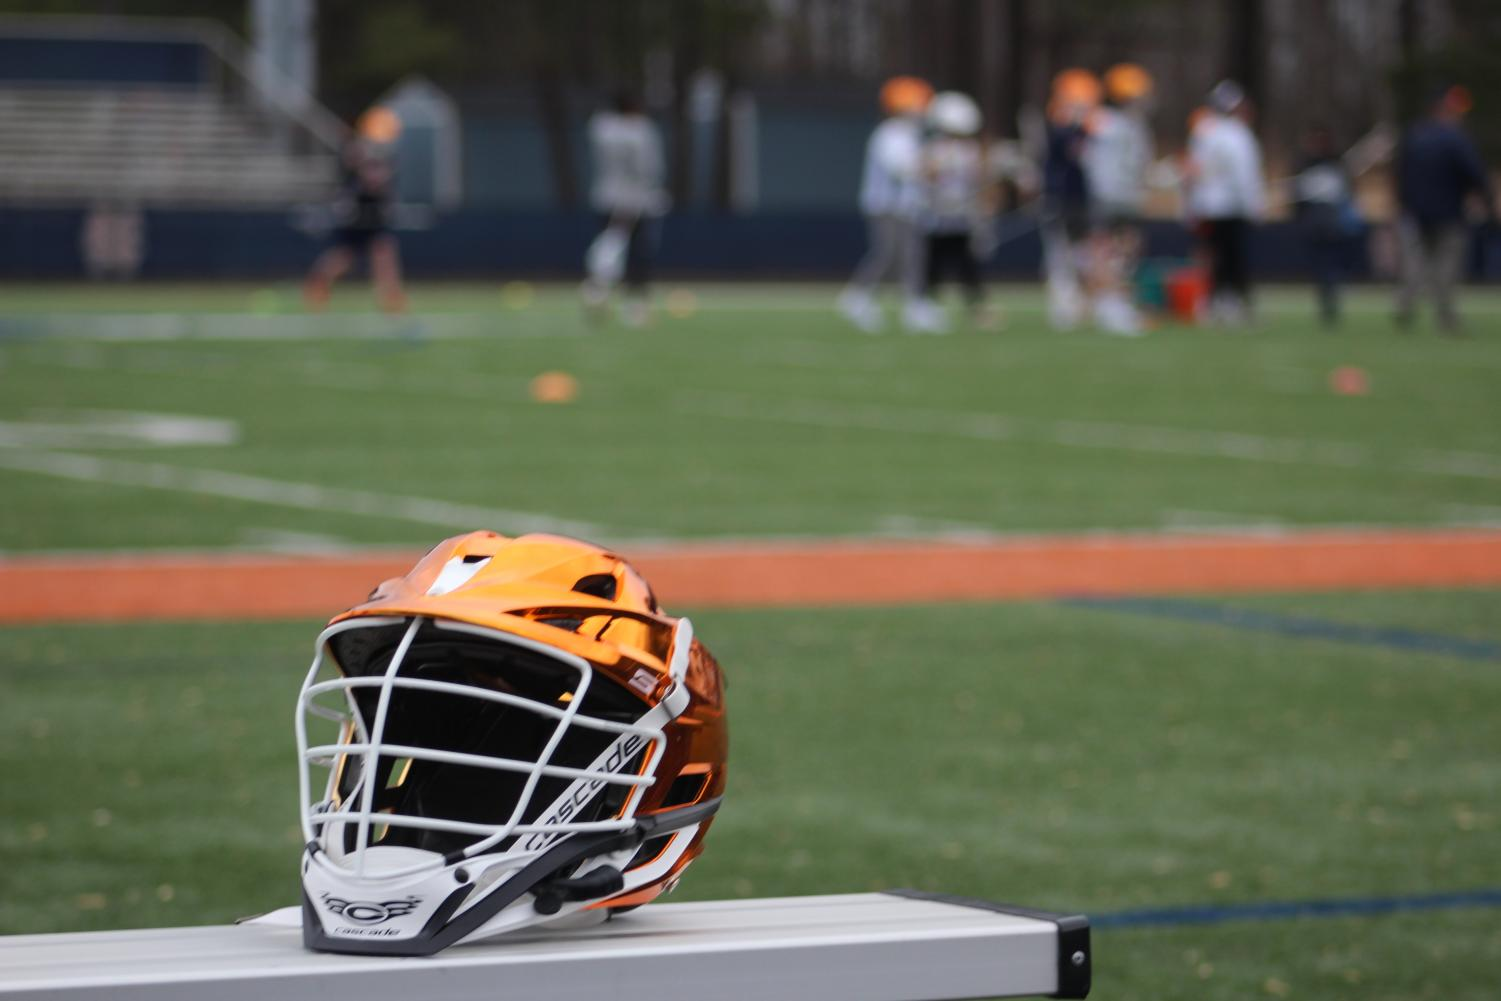 "With a new season comes new gear. Starting off the season with new chrome orange helmets, the boys varsity lacrosse team eagerly awaits their first game. Head Coach John Almy hopes that the seniors will take the reins and lead the team to several victories. ""I just hope to see growth from last year and see the senior class take the step up and be leaders,"" Coach Almy said. The Warriors will play their first game against Wheeler on Wednesday, February 6."